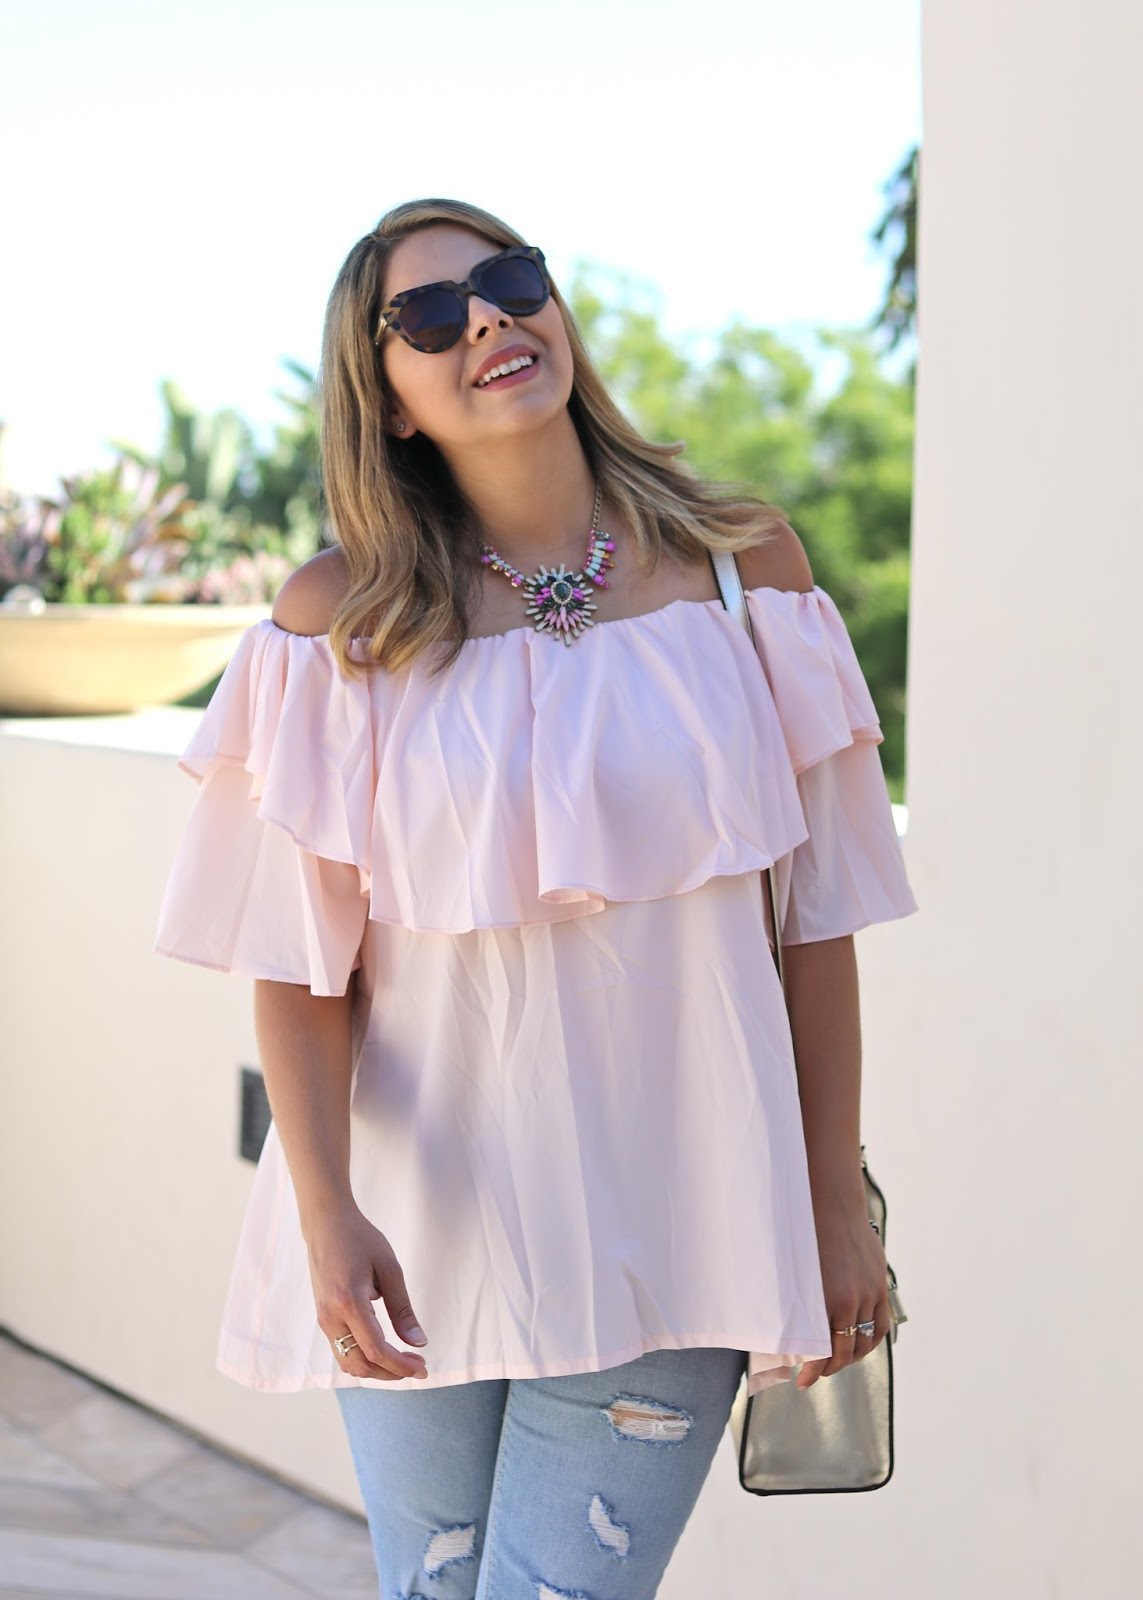 Latina fashion blogger, latina style blogger, karen walker sunglasses outfit, how to wear an off the shoulder top, san diego lifestyle